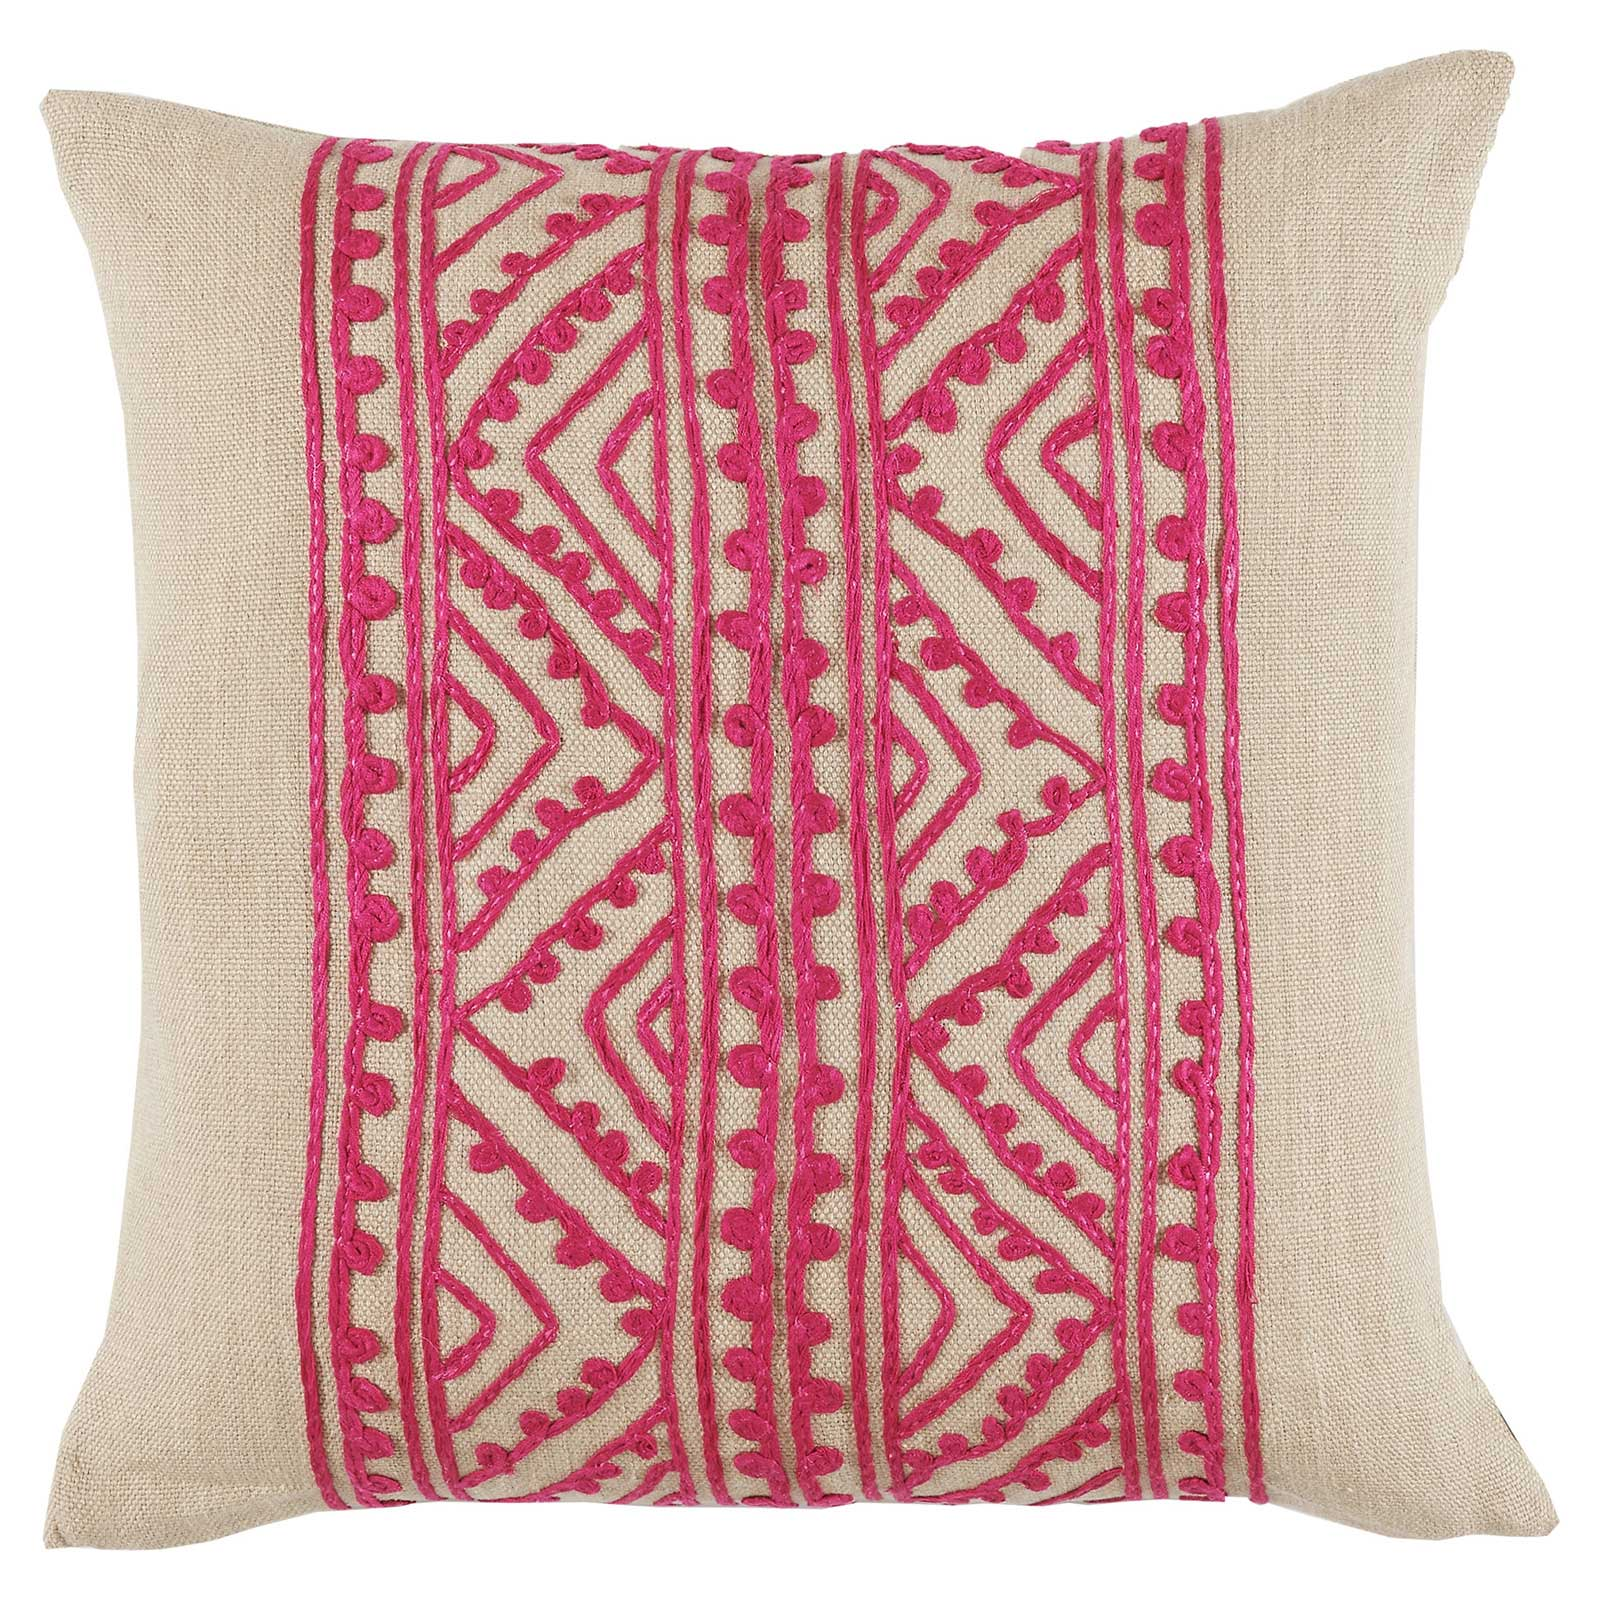 Bengali Global Silk Pink Embroidered Beige Pillow - 20x20